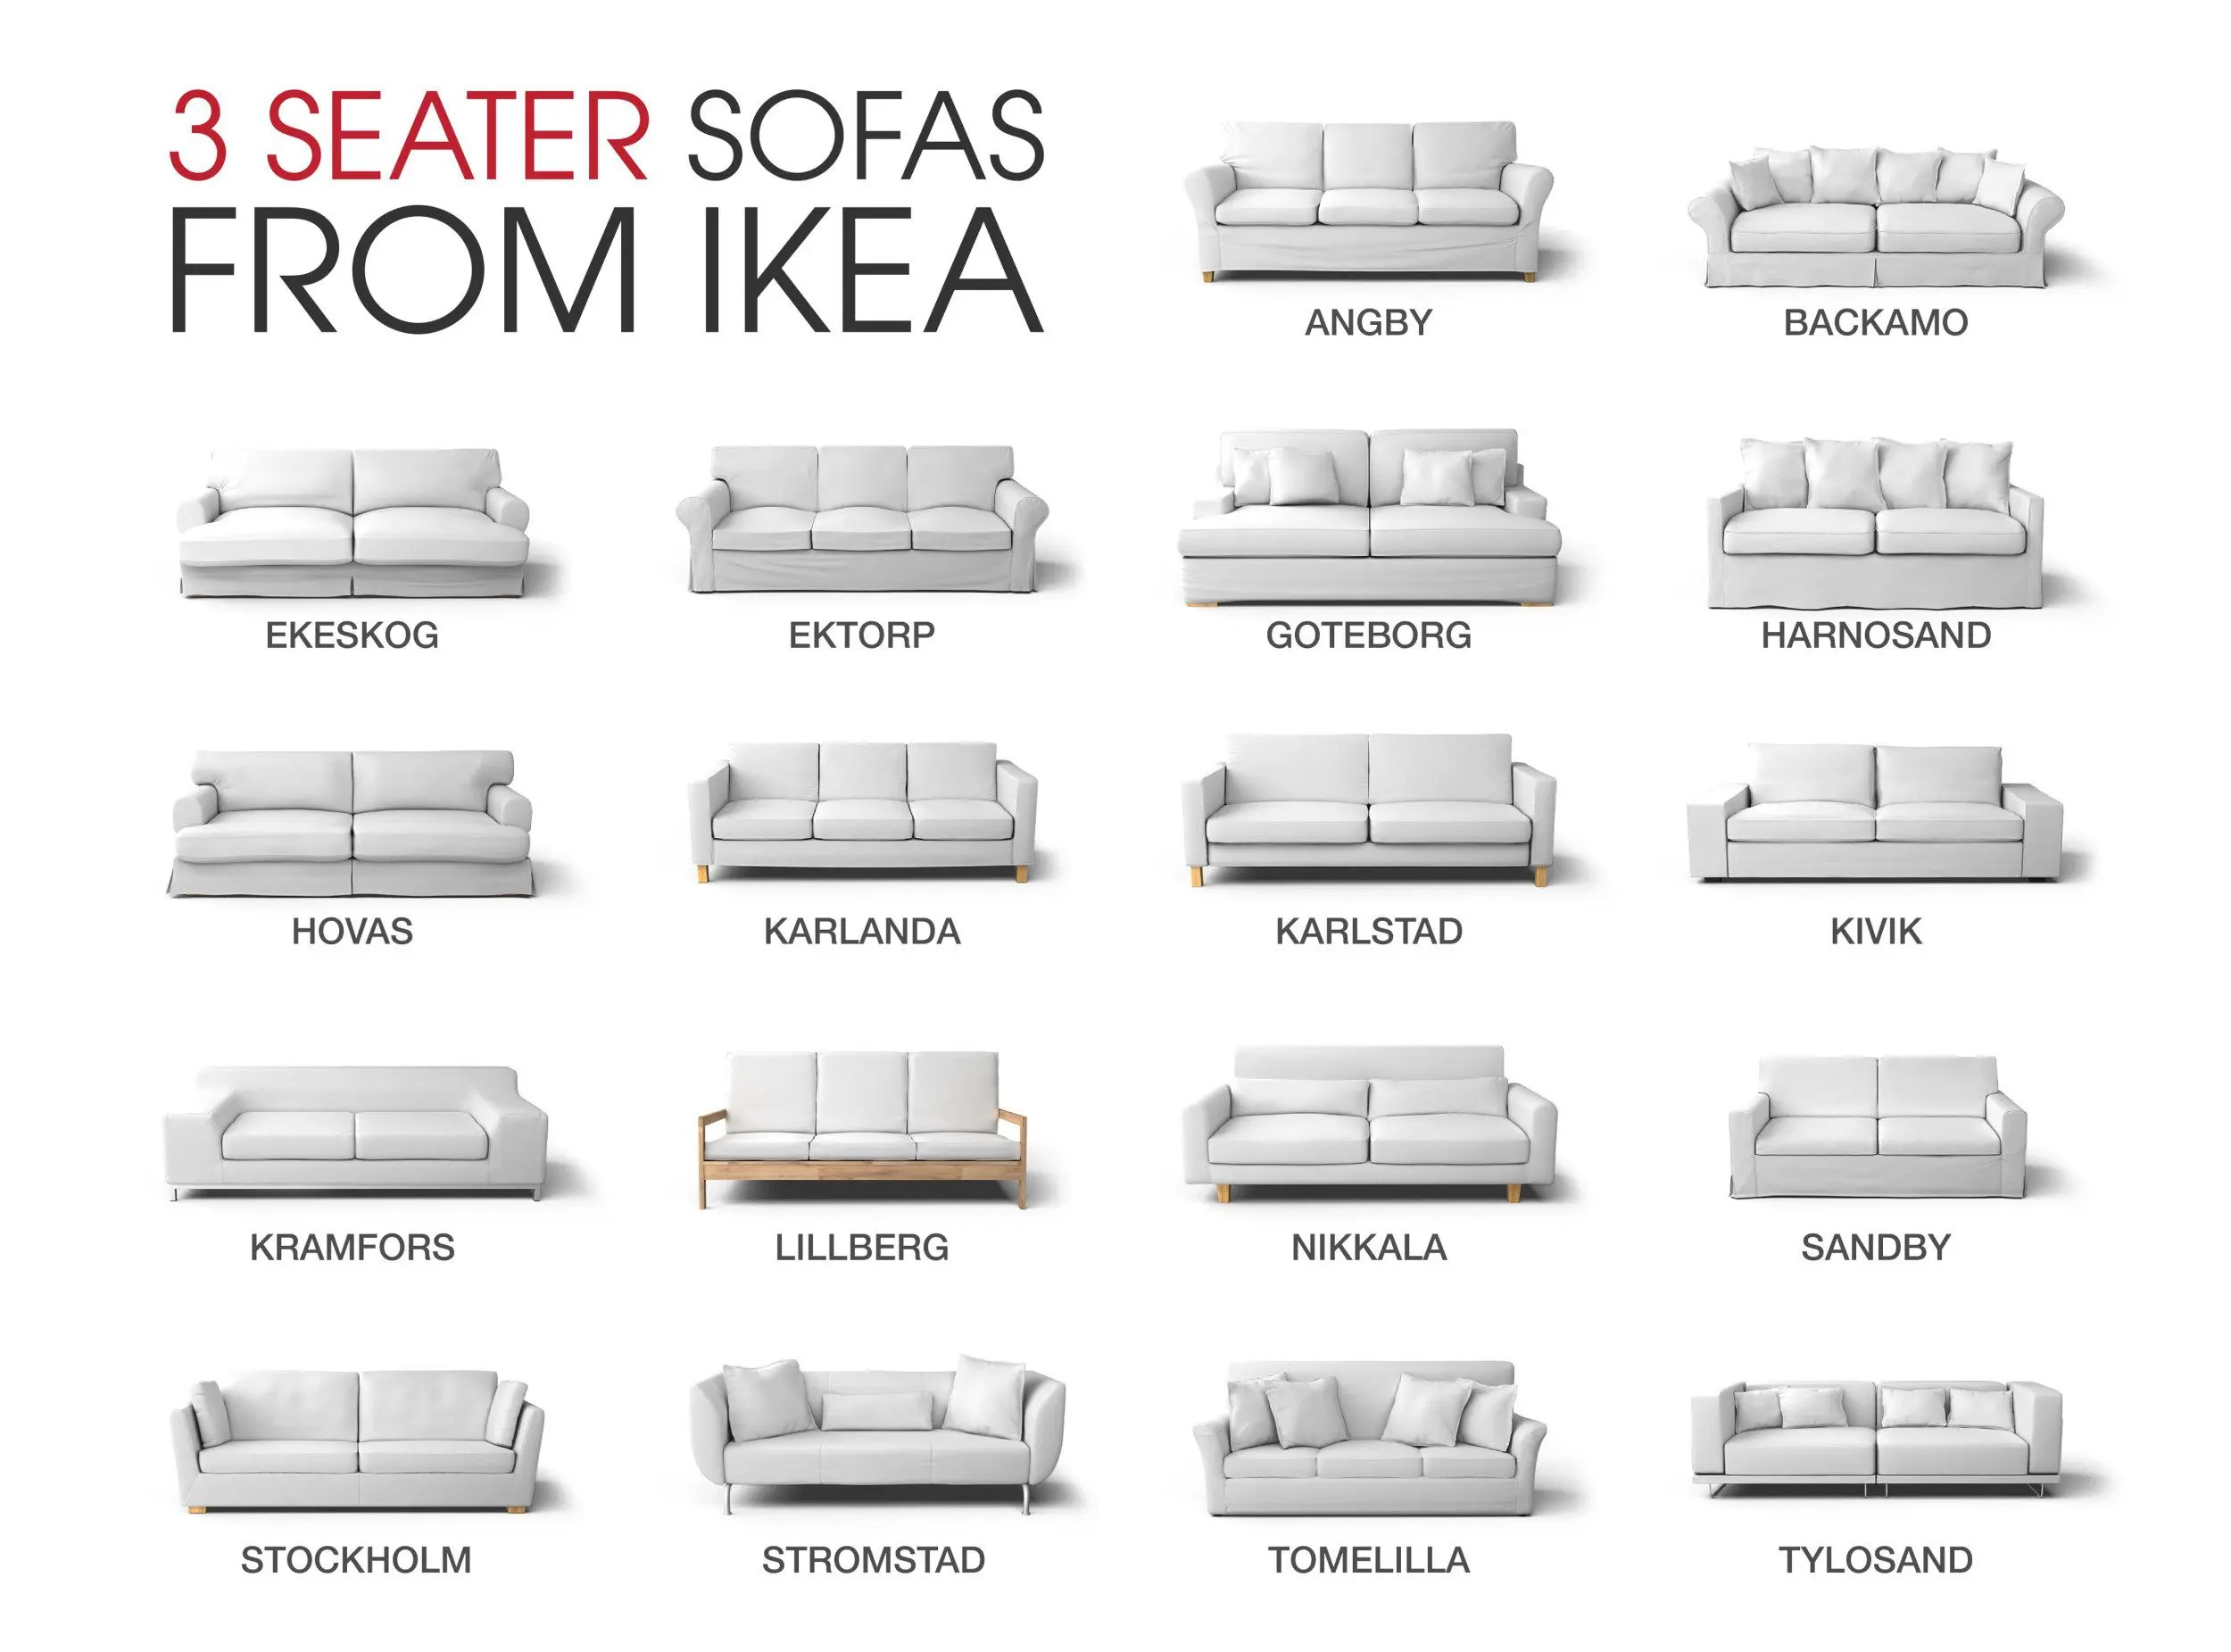 hovas sofa dimensions collect ikea best house interior today